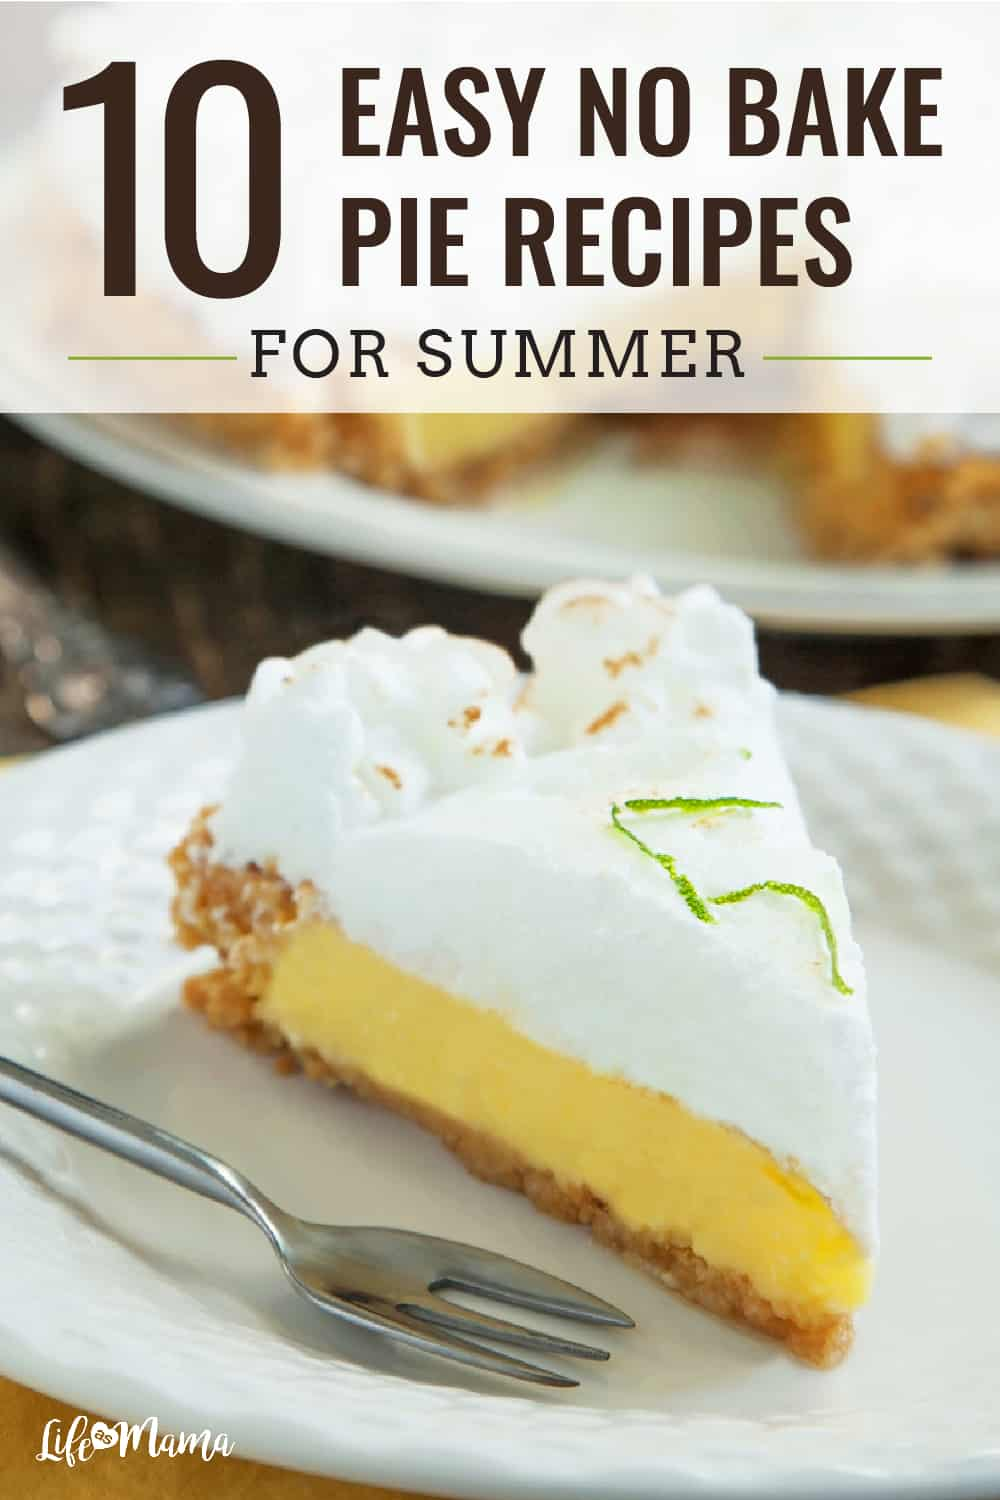 10 Easy No Bake Pie Recipes For Summer